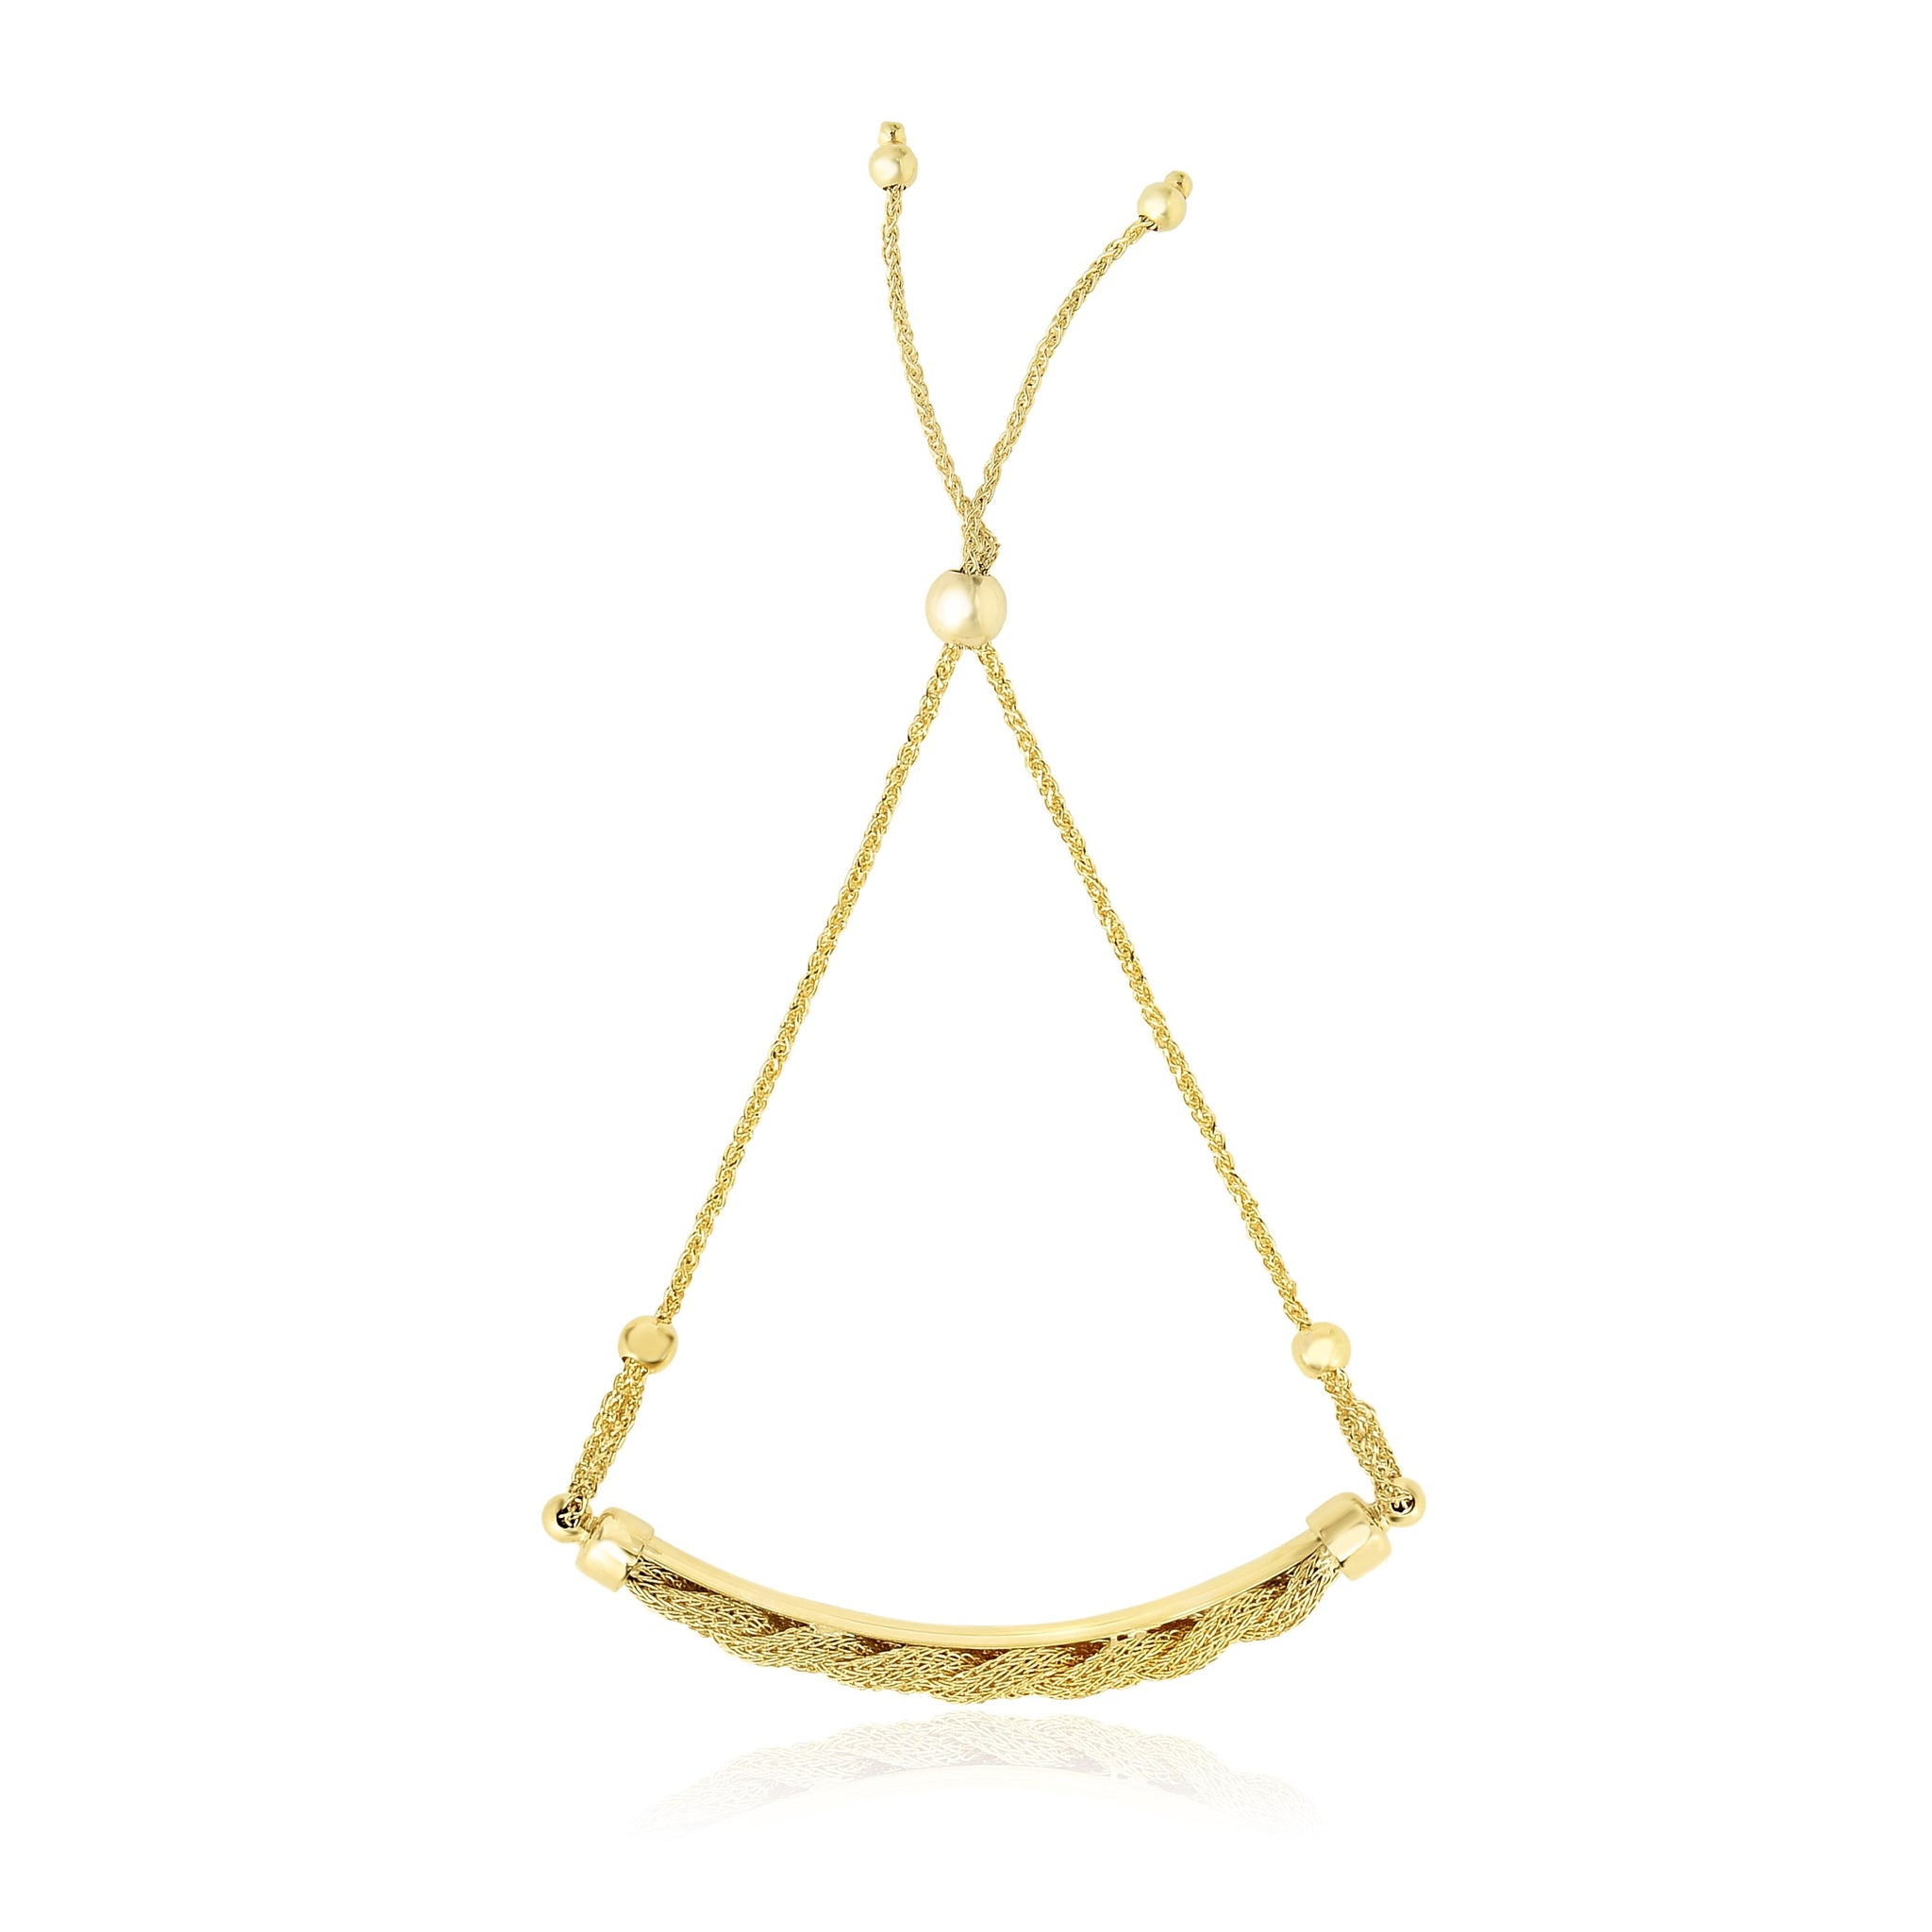 14K Yellow Gold Bar and Chain Adjustable Lariat Style Bracelet